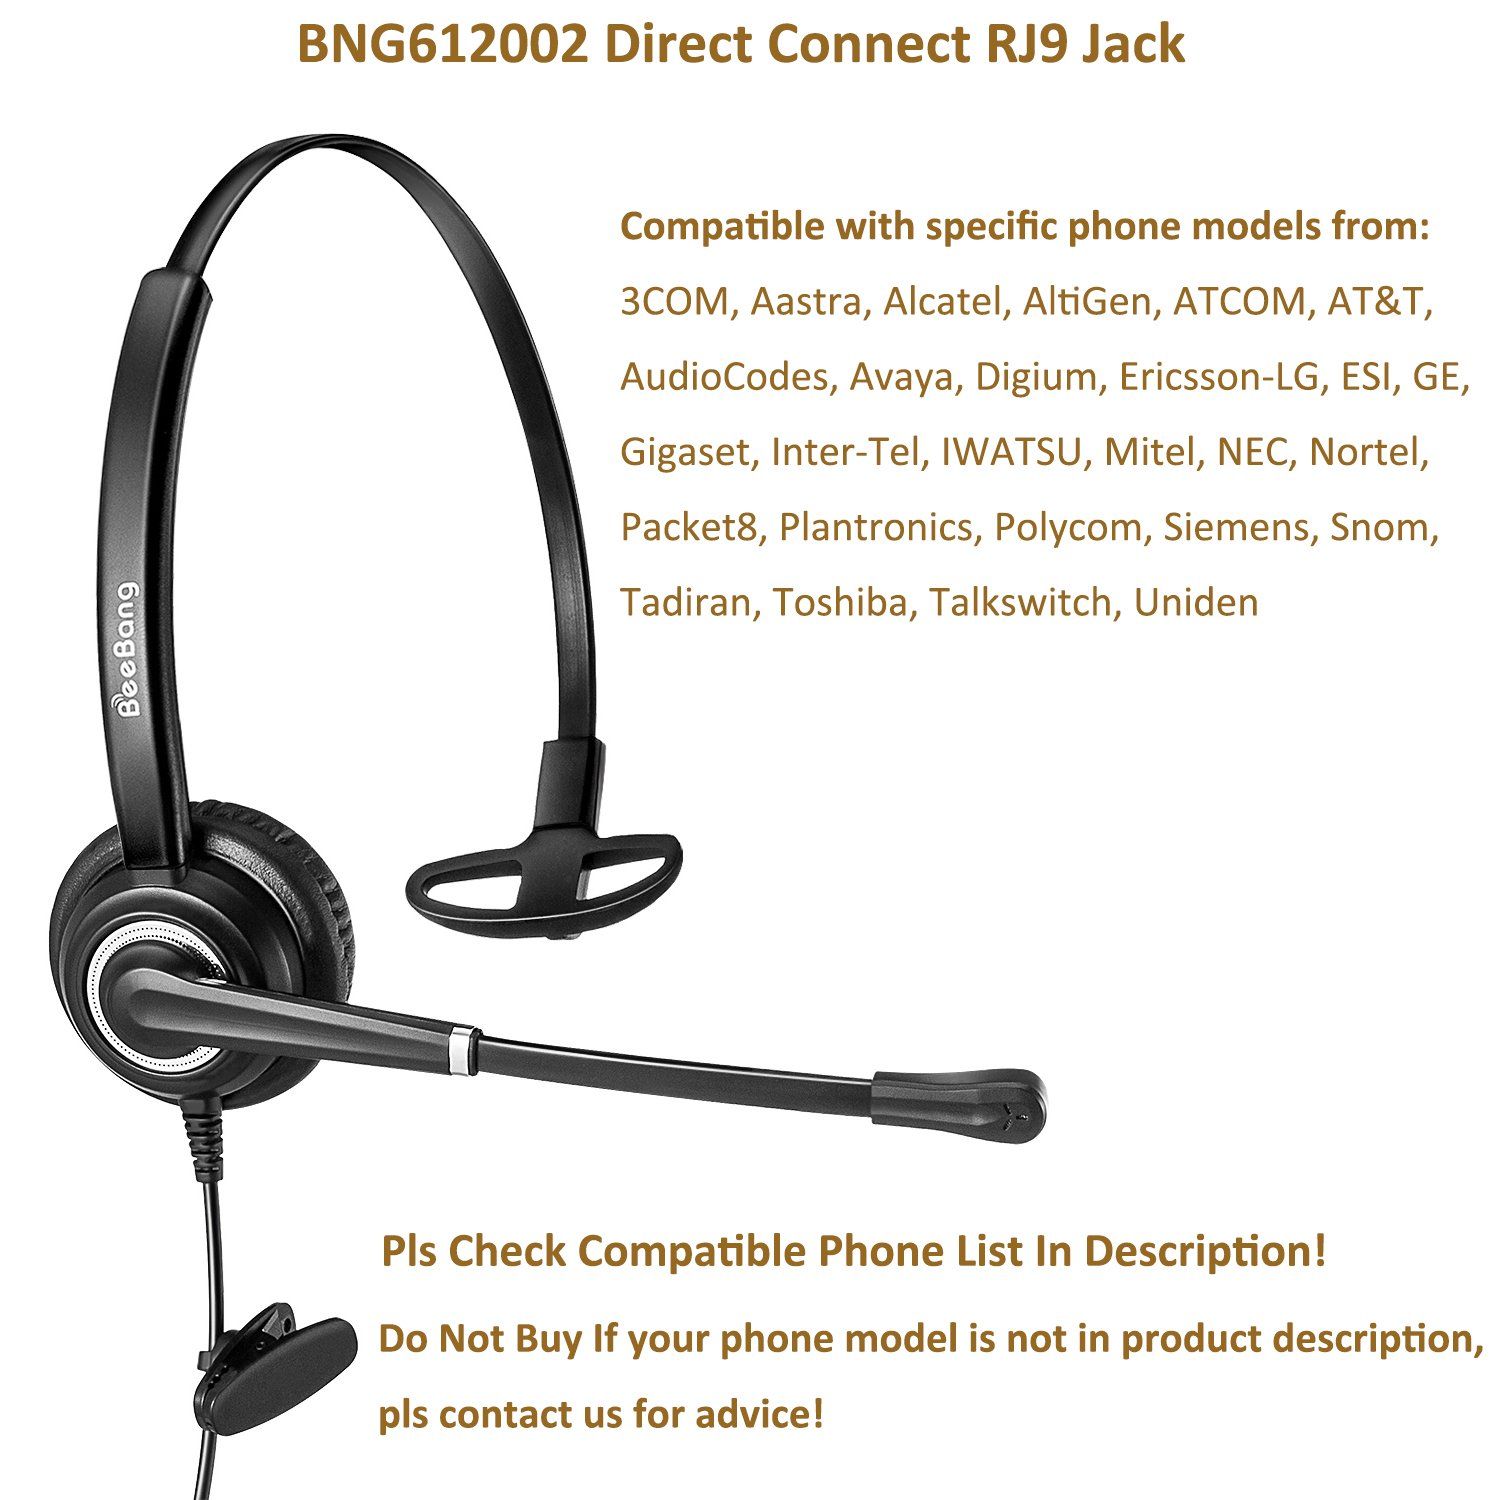 Beebang Corded Telephone Headset With Noise Cancelling Microphone Mono Jack Wiring Rj9 For Call Centers Offices Landline Phones